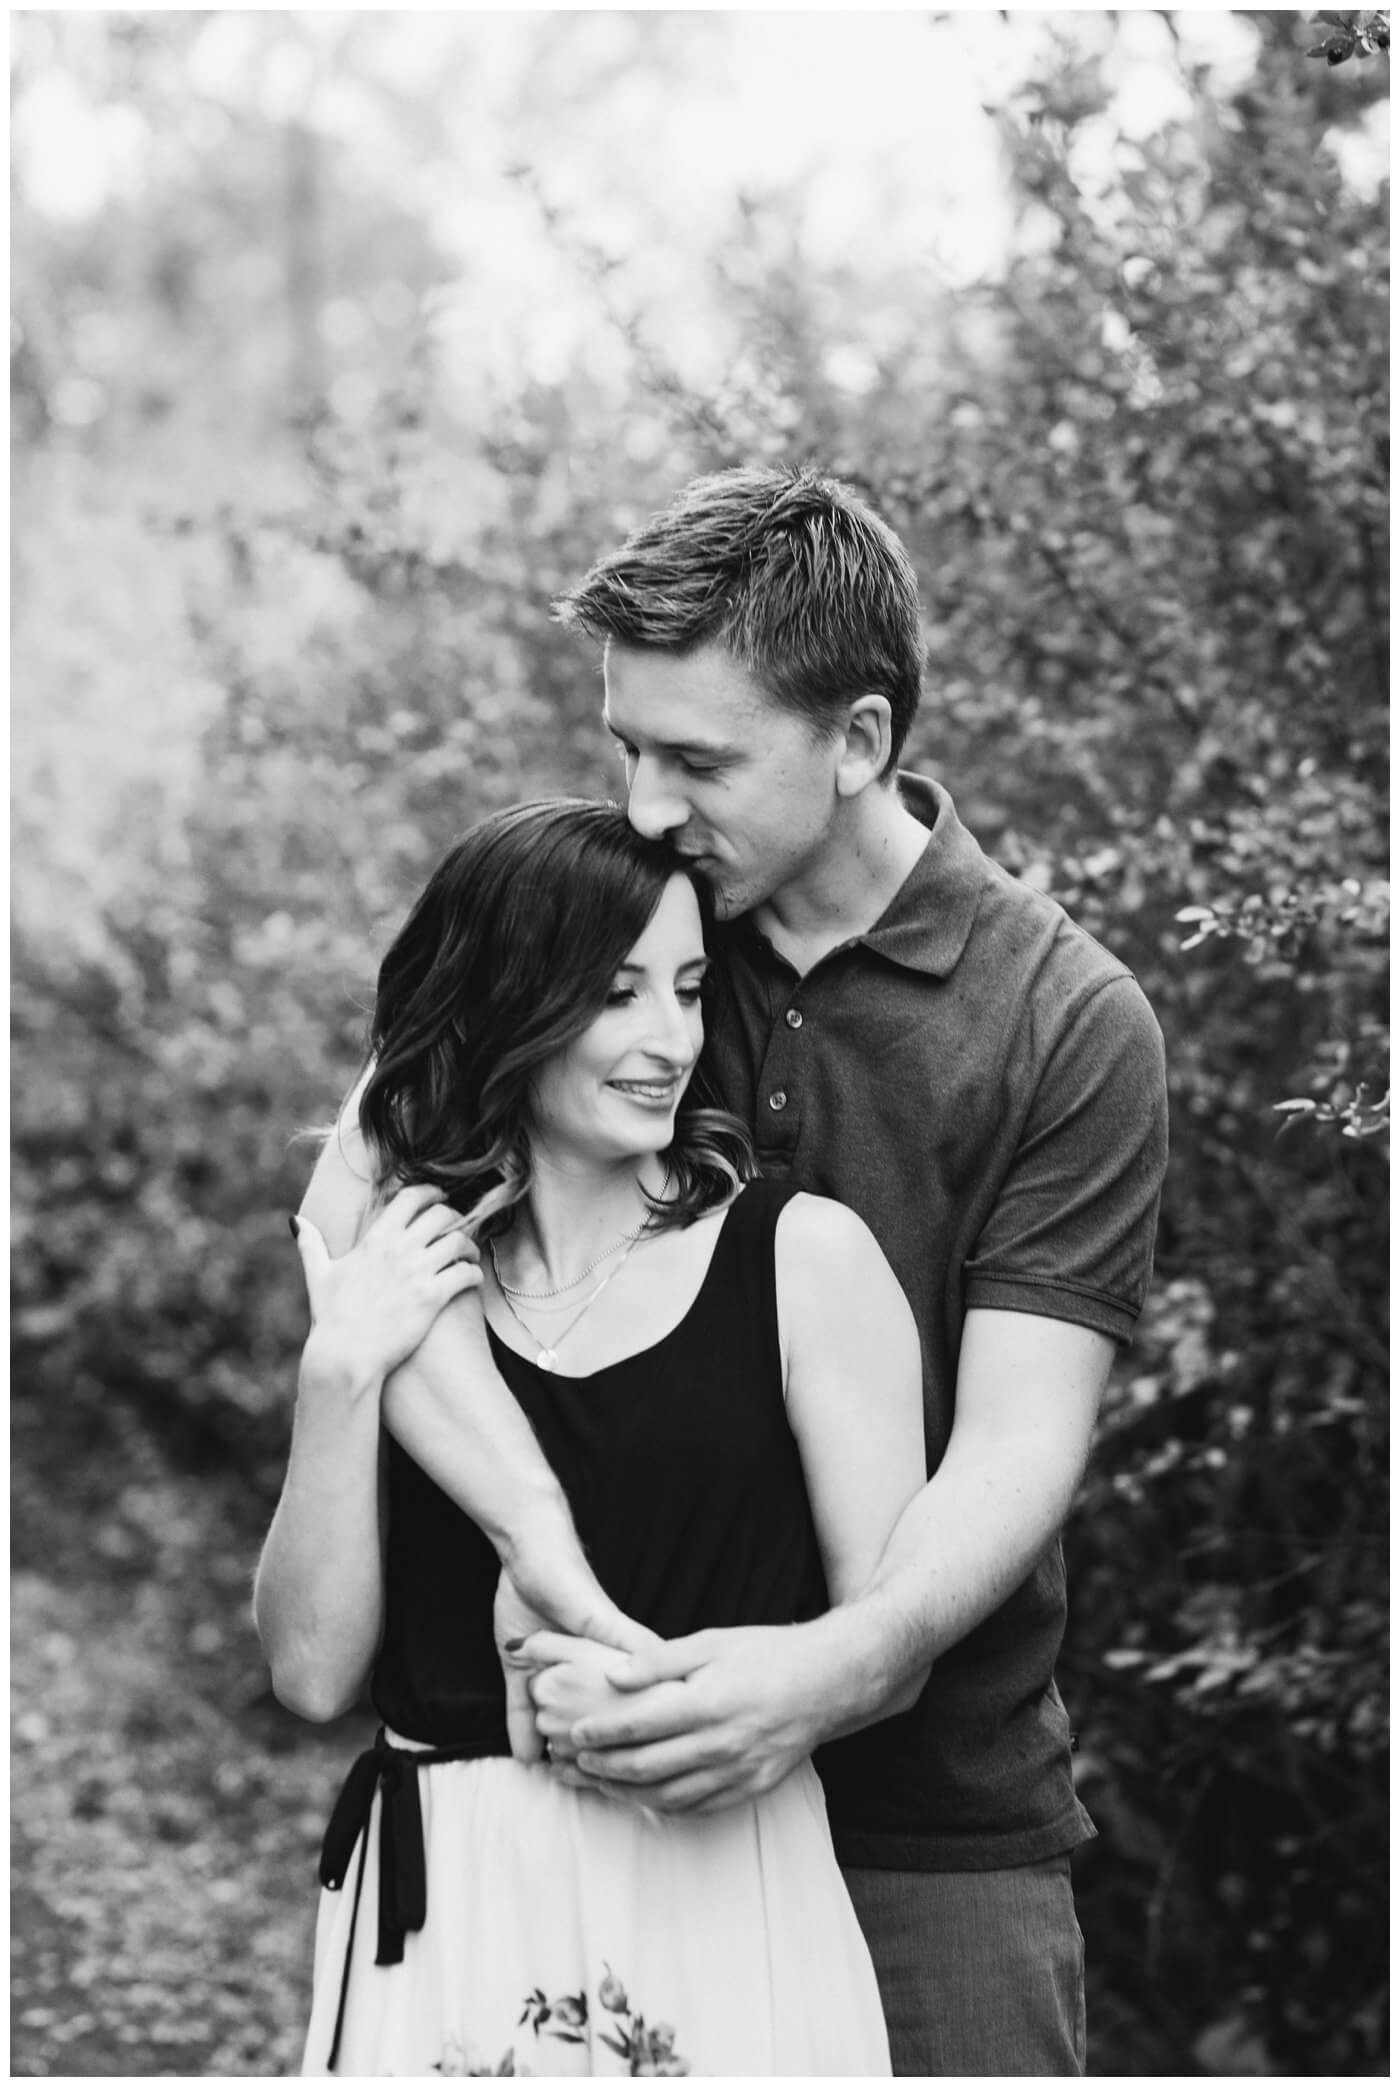 Regina Engagement Photography - Taylor & Jolene - 002 - White City Engagement Session - Black and white kissing forehead